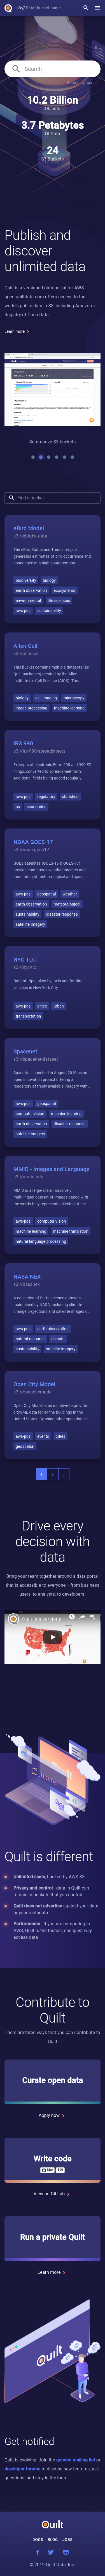 Example of Design for Science, Mobile Landing Page by open.quiltdata.com | Mobile Landing Page Design